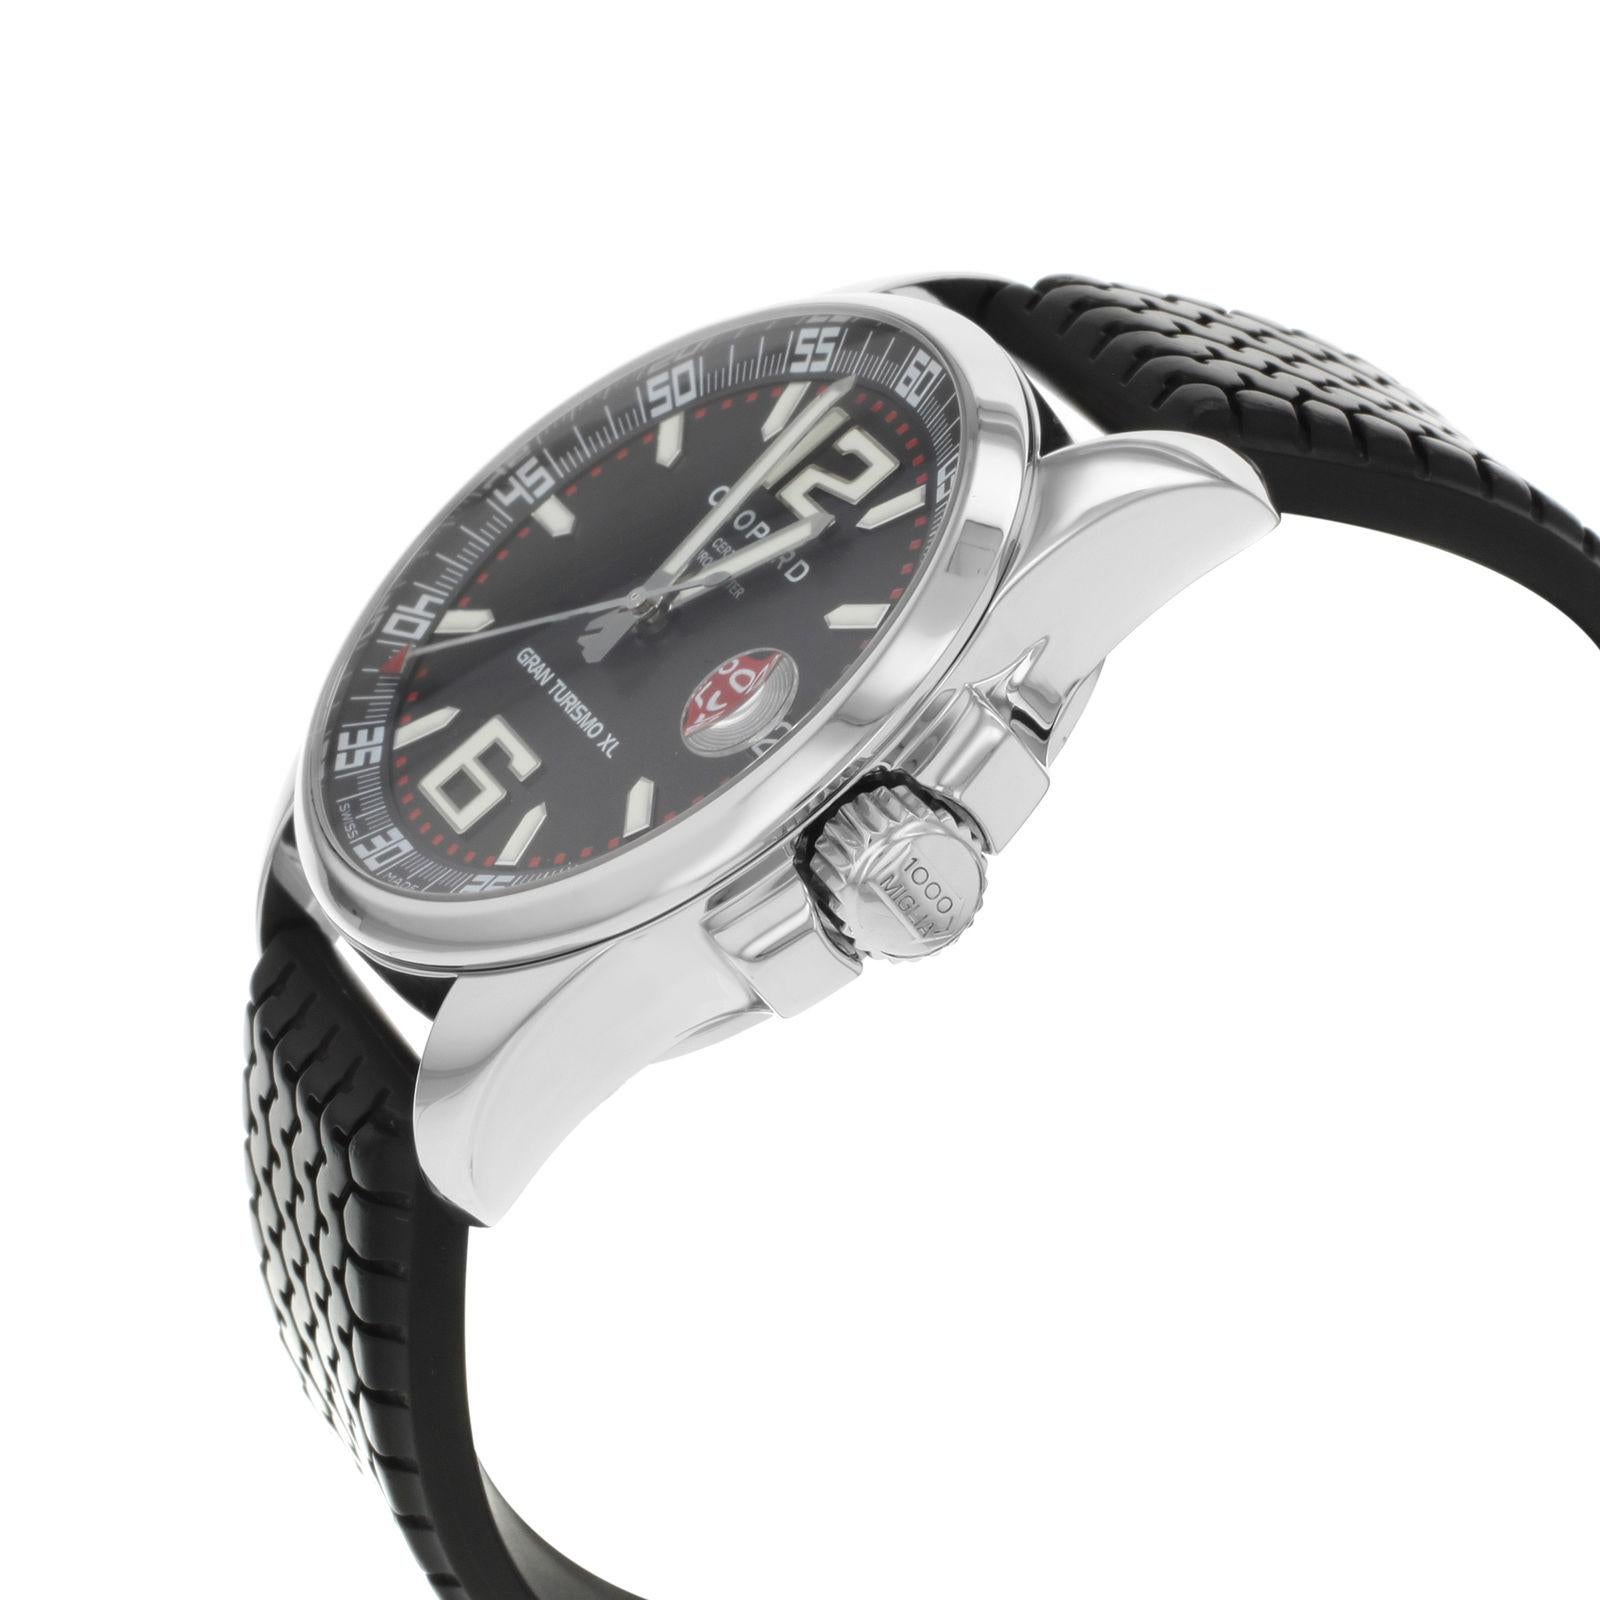 6591fd69786 Chopard Mille Miglia Gran Turismo XL 168997-3001 Steel Automatic Mens Watch  For Sale at 1stdibs